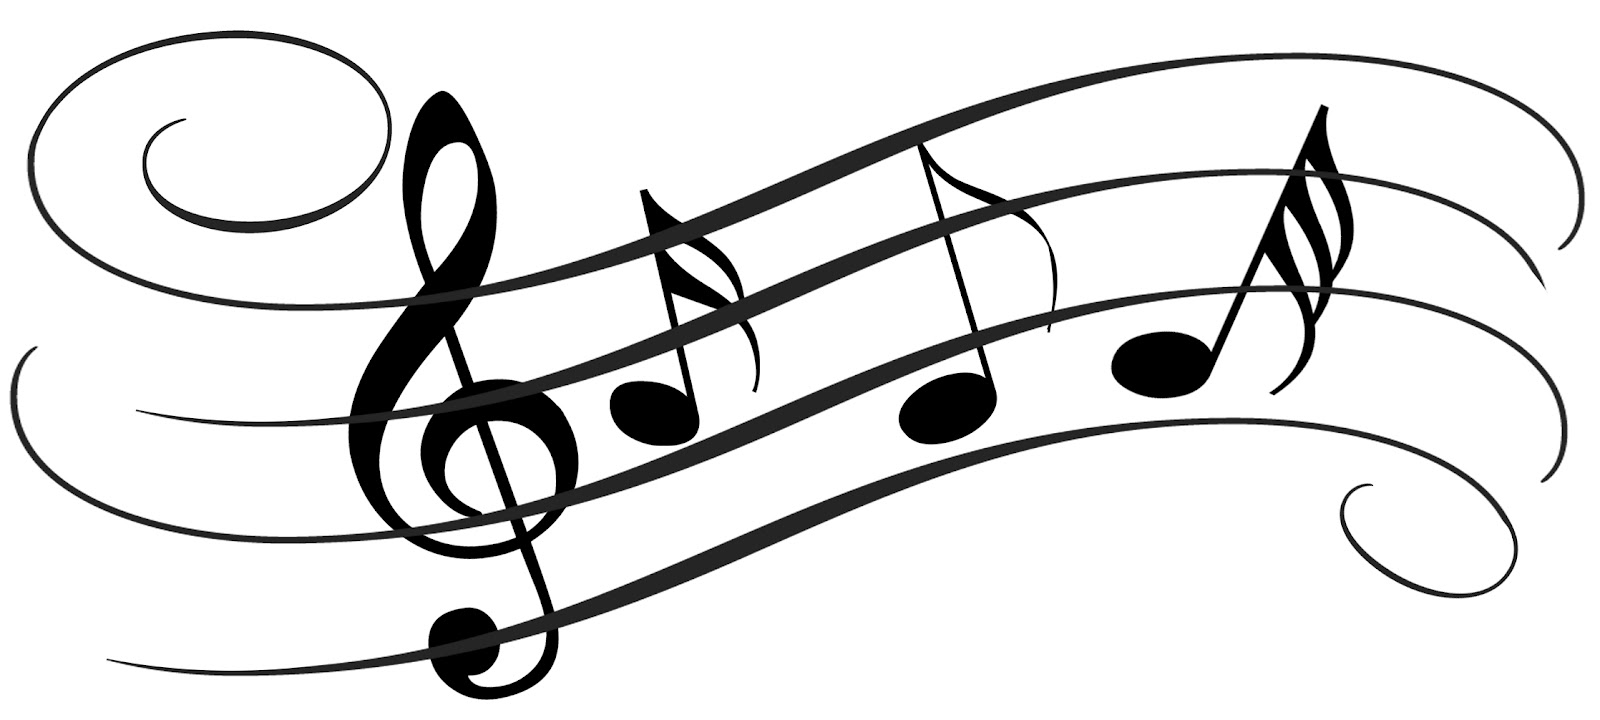 1600x720 Clipart Free Musical Note